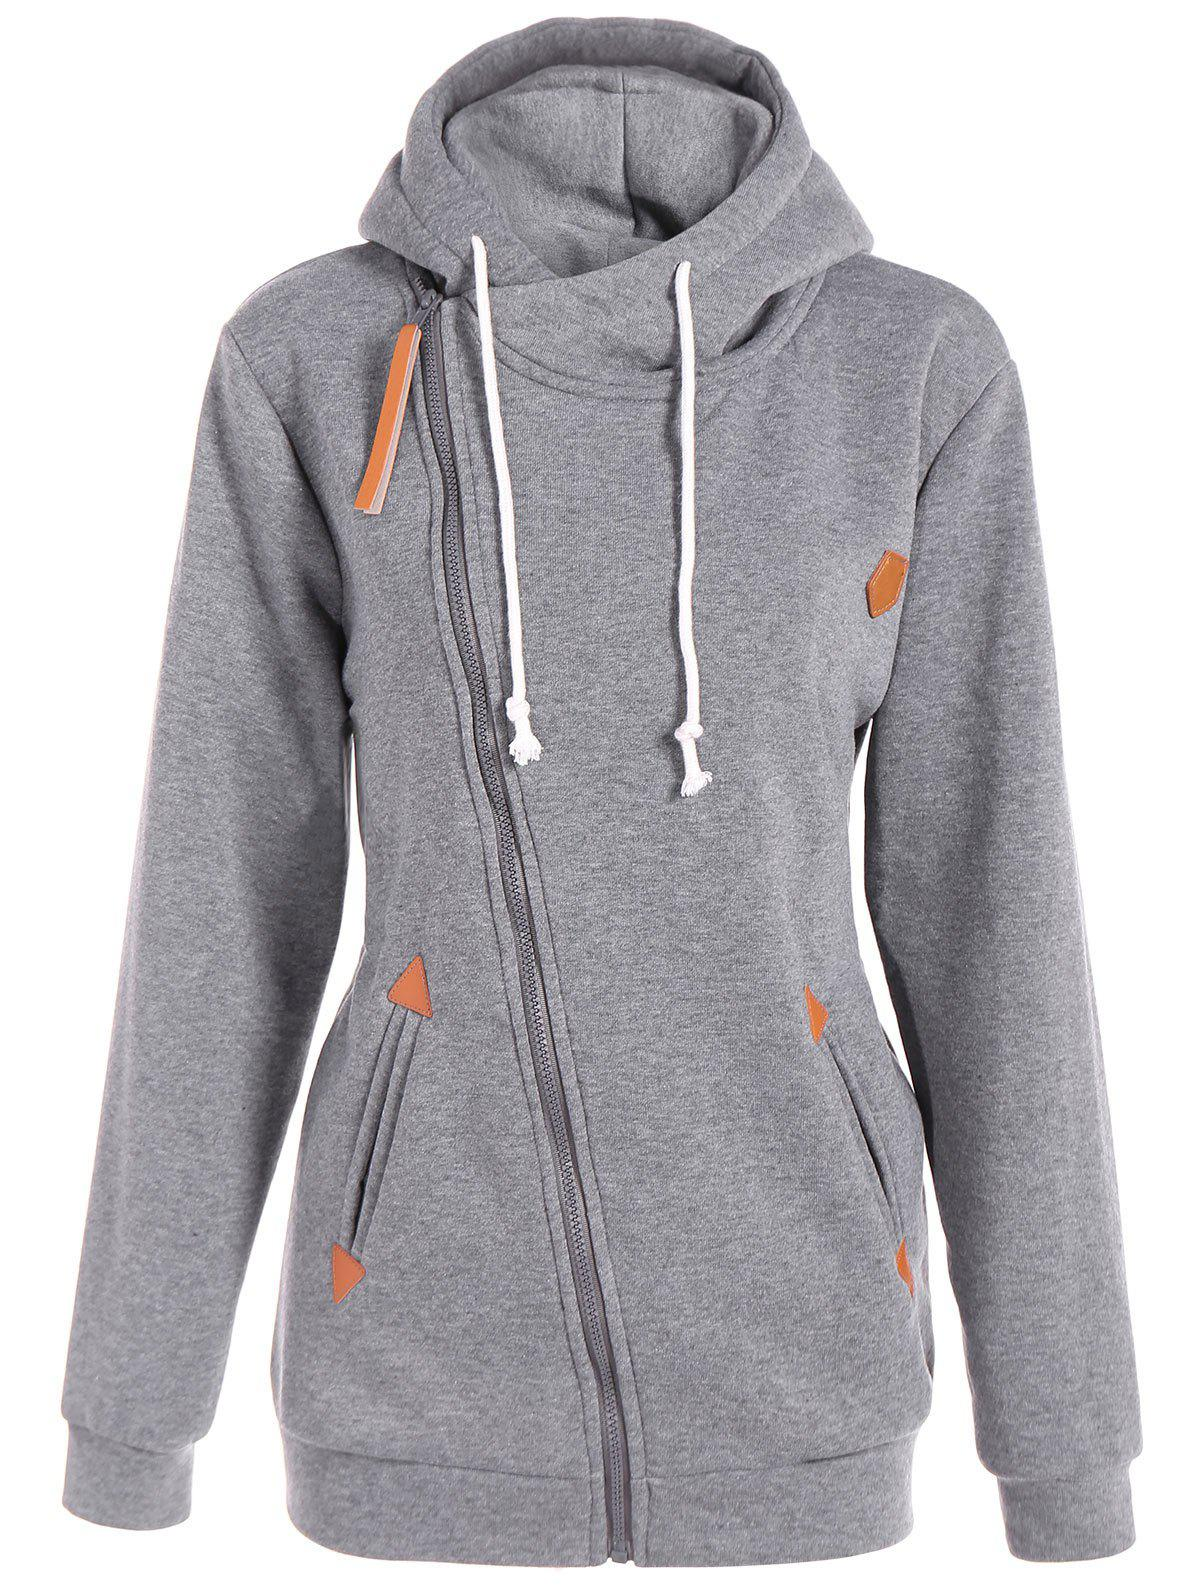 Fashion Inclined Zipper Drawstring Plus Size Hoodie